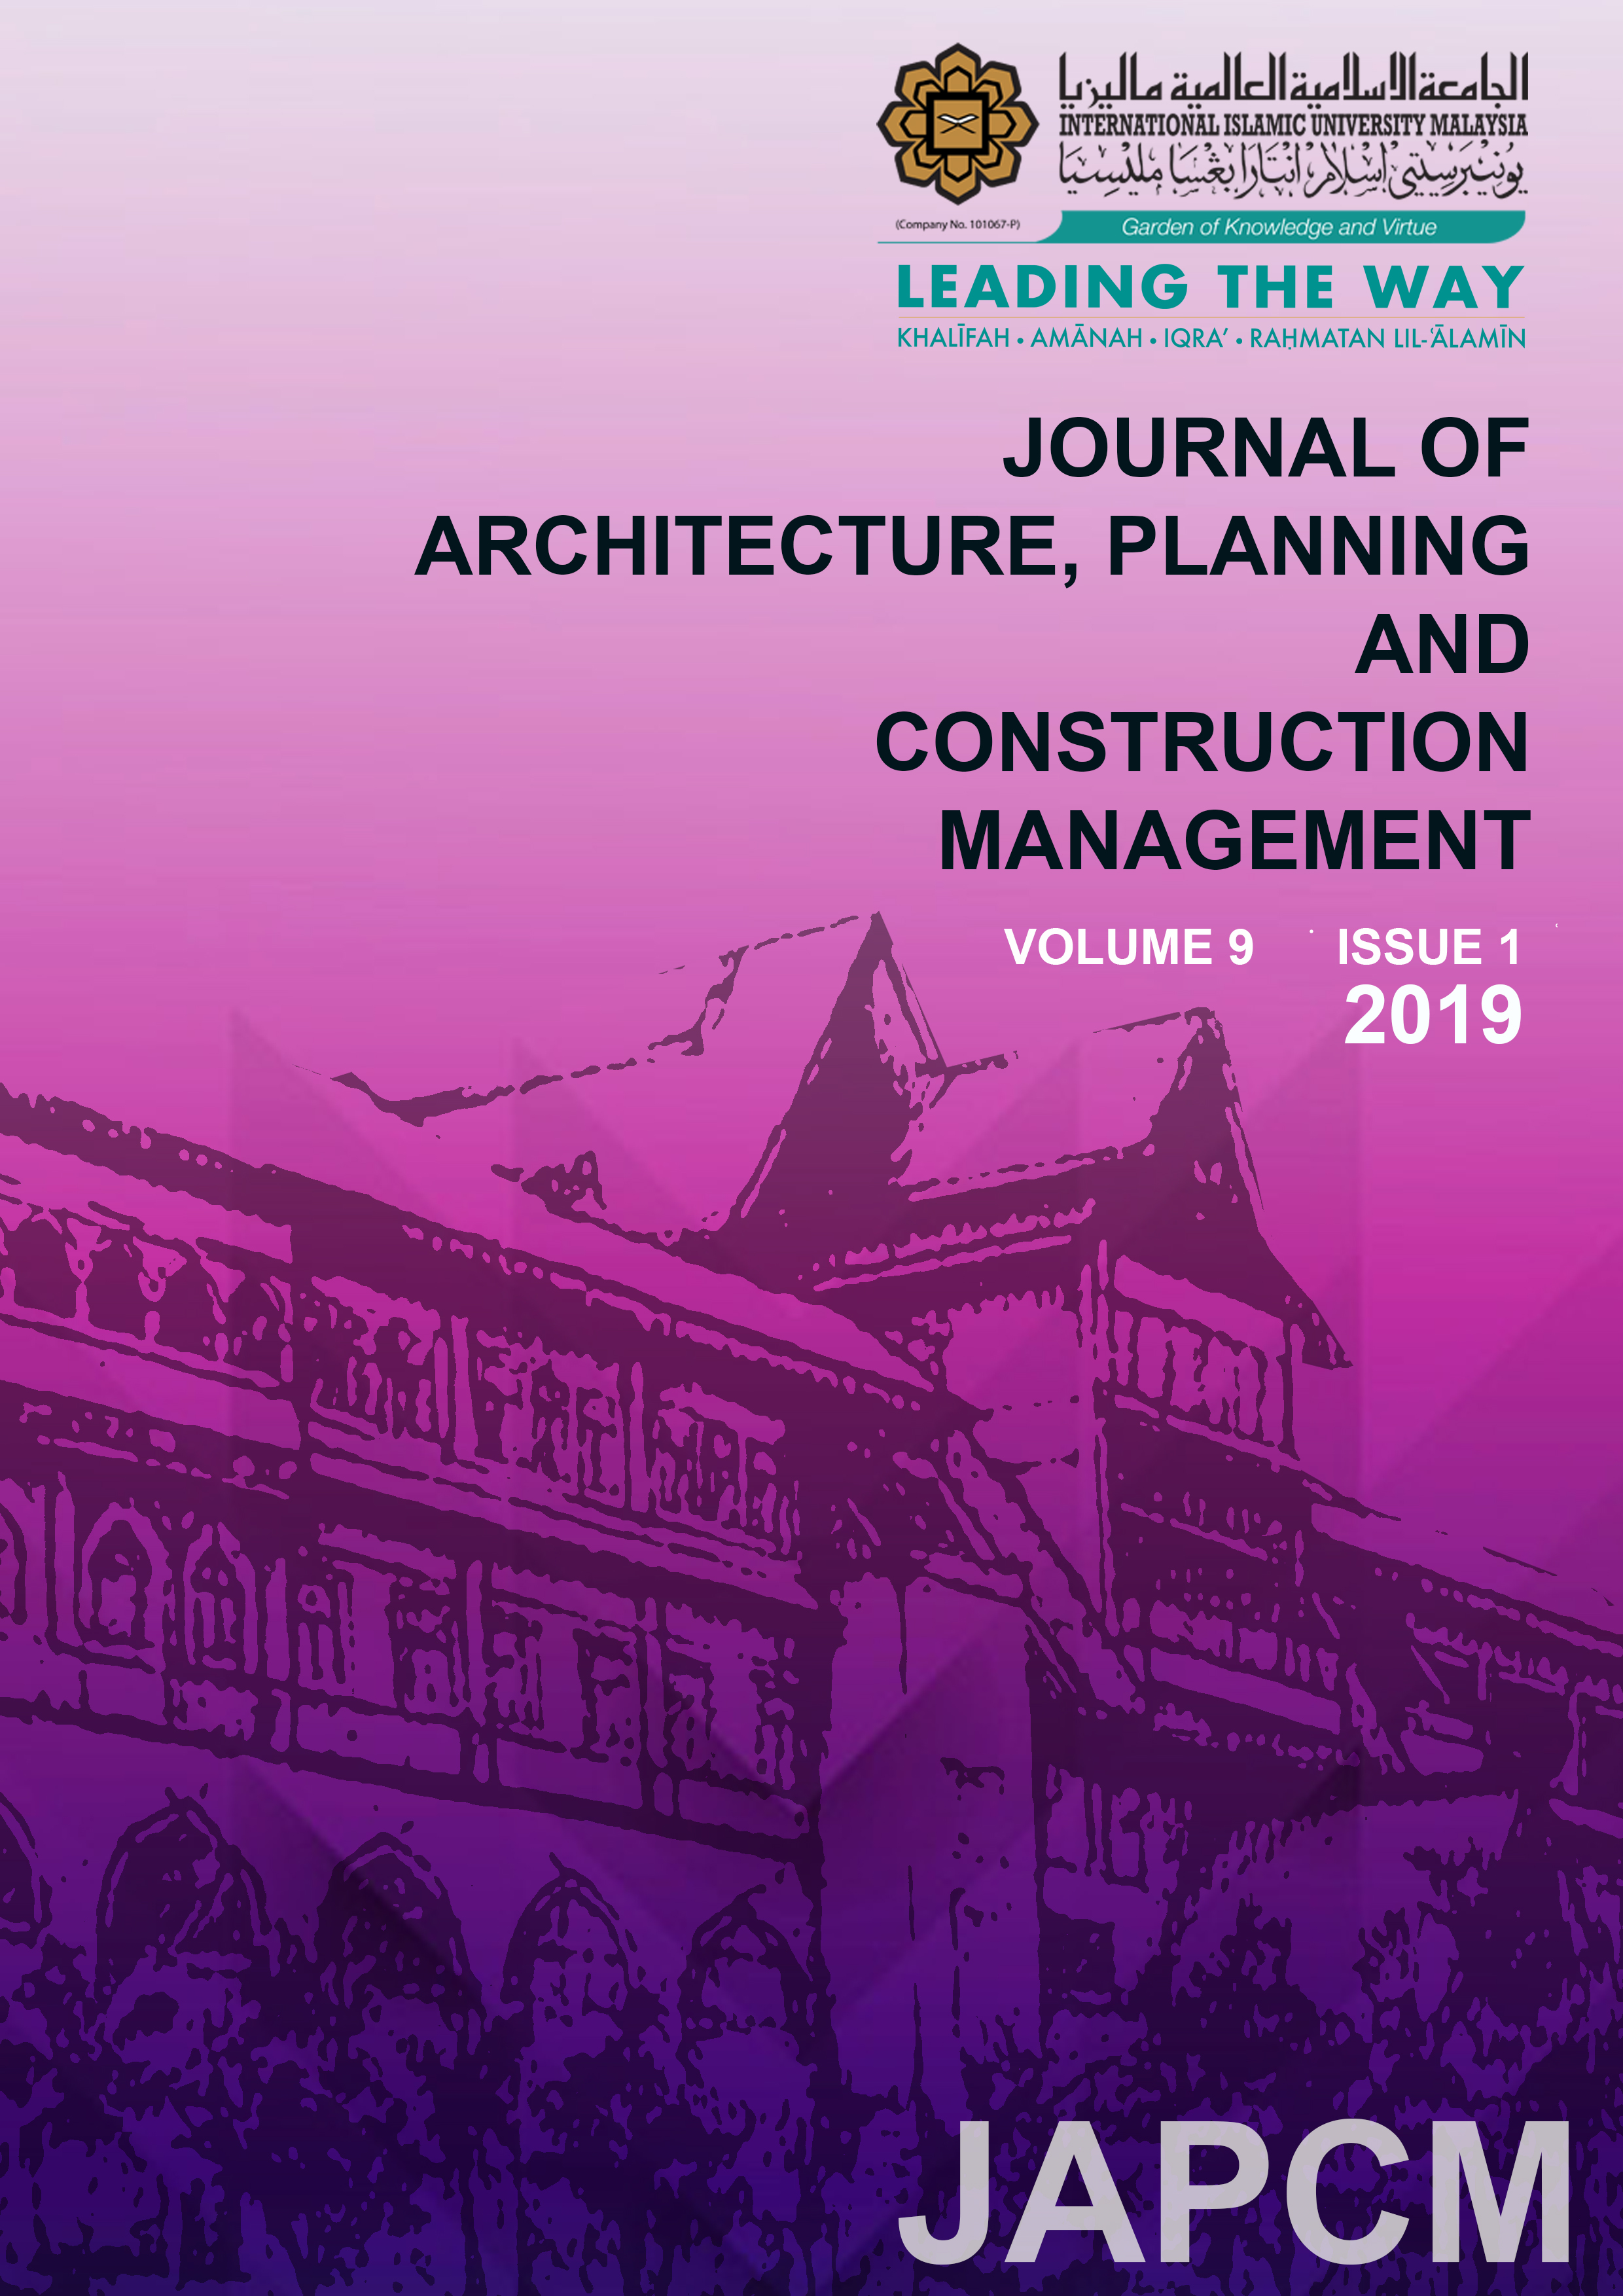 Journal of Architecture, Planning and Construction Management